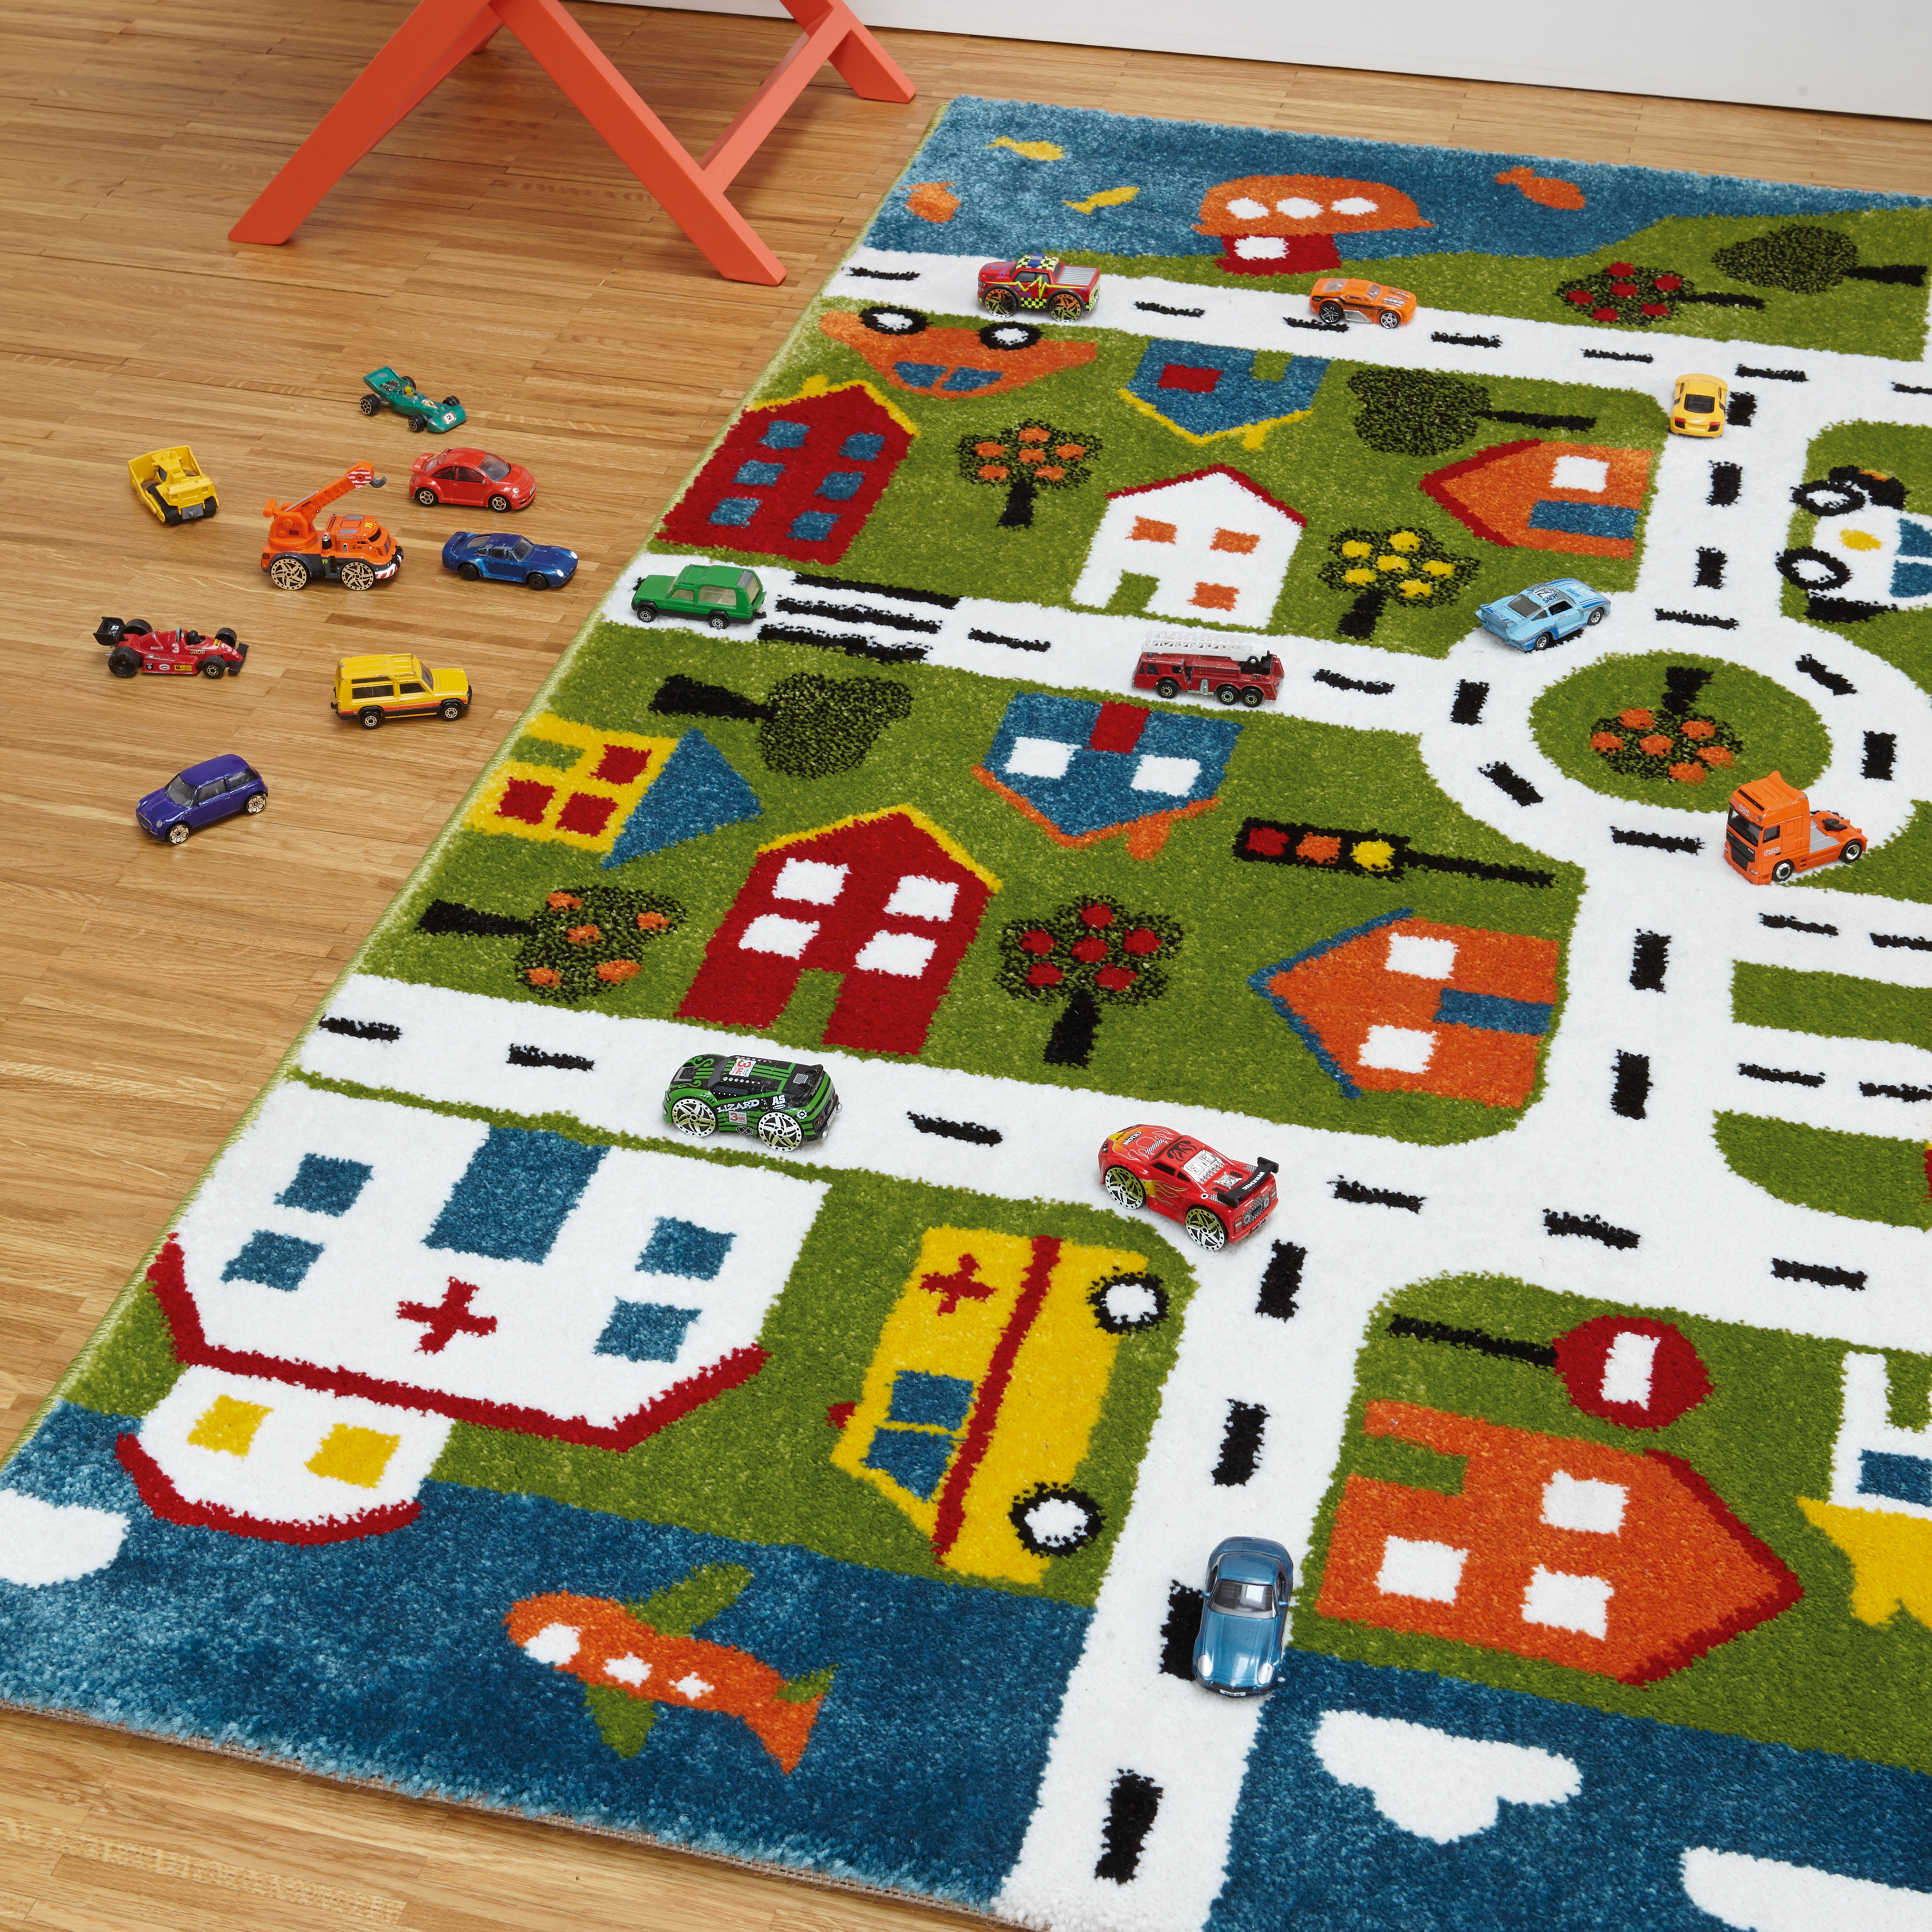 Play Rug Boys Football Pitch Childrens Rug Green: Play Rugs With Free UK Delivery From The Rug Seller Ltd